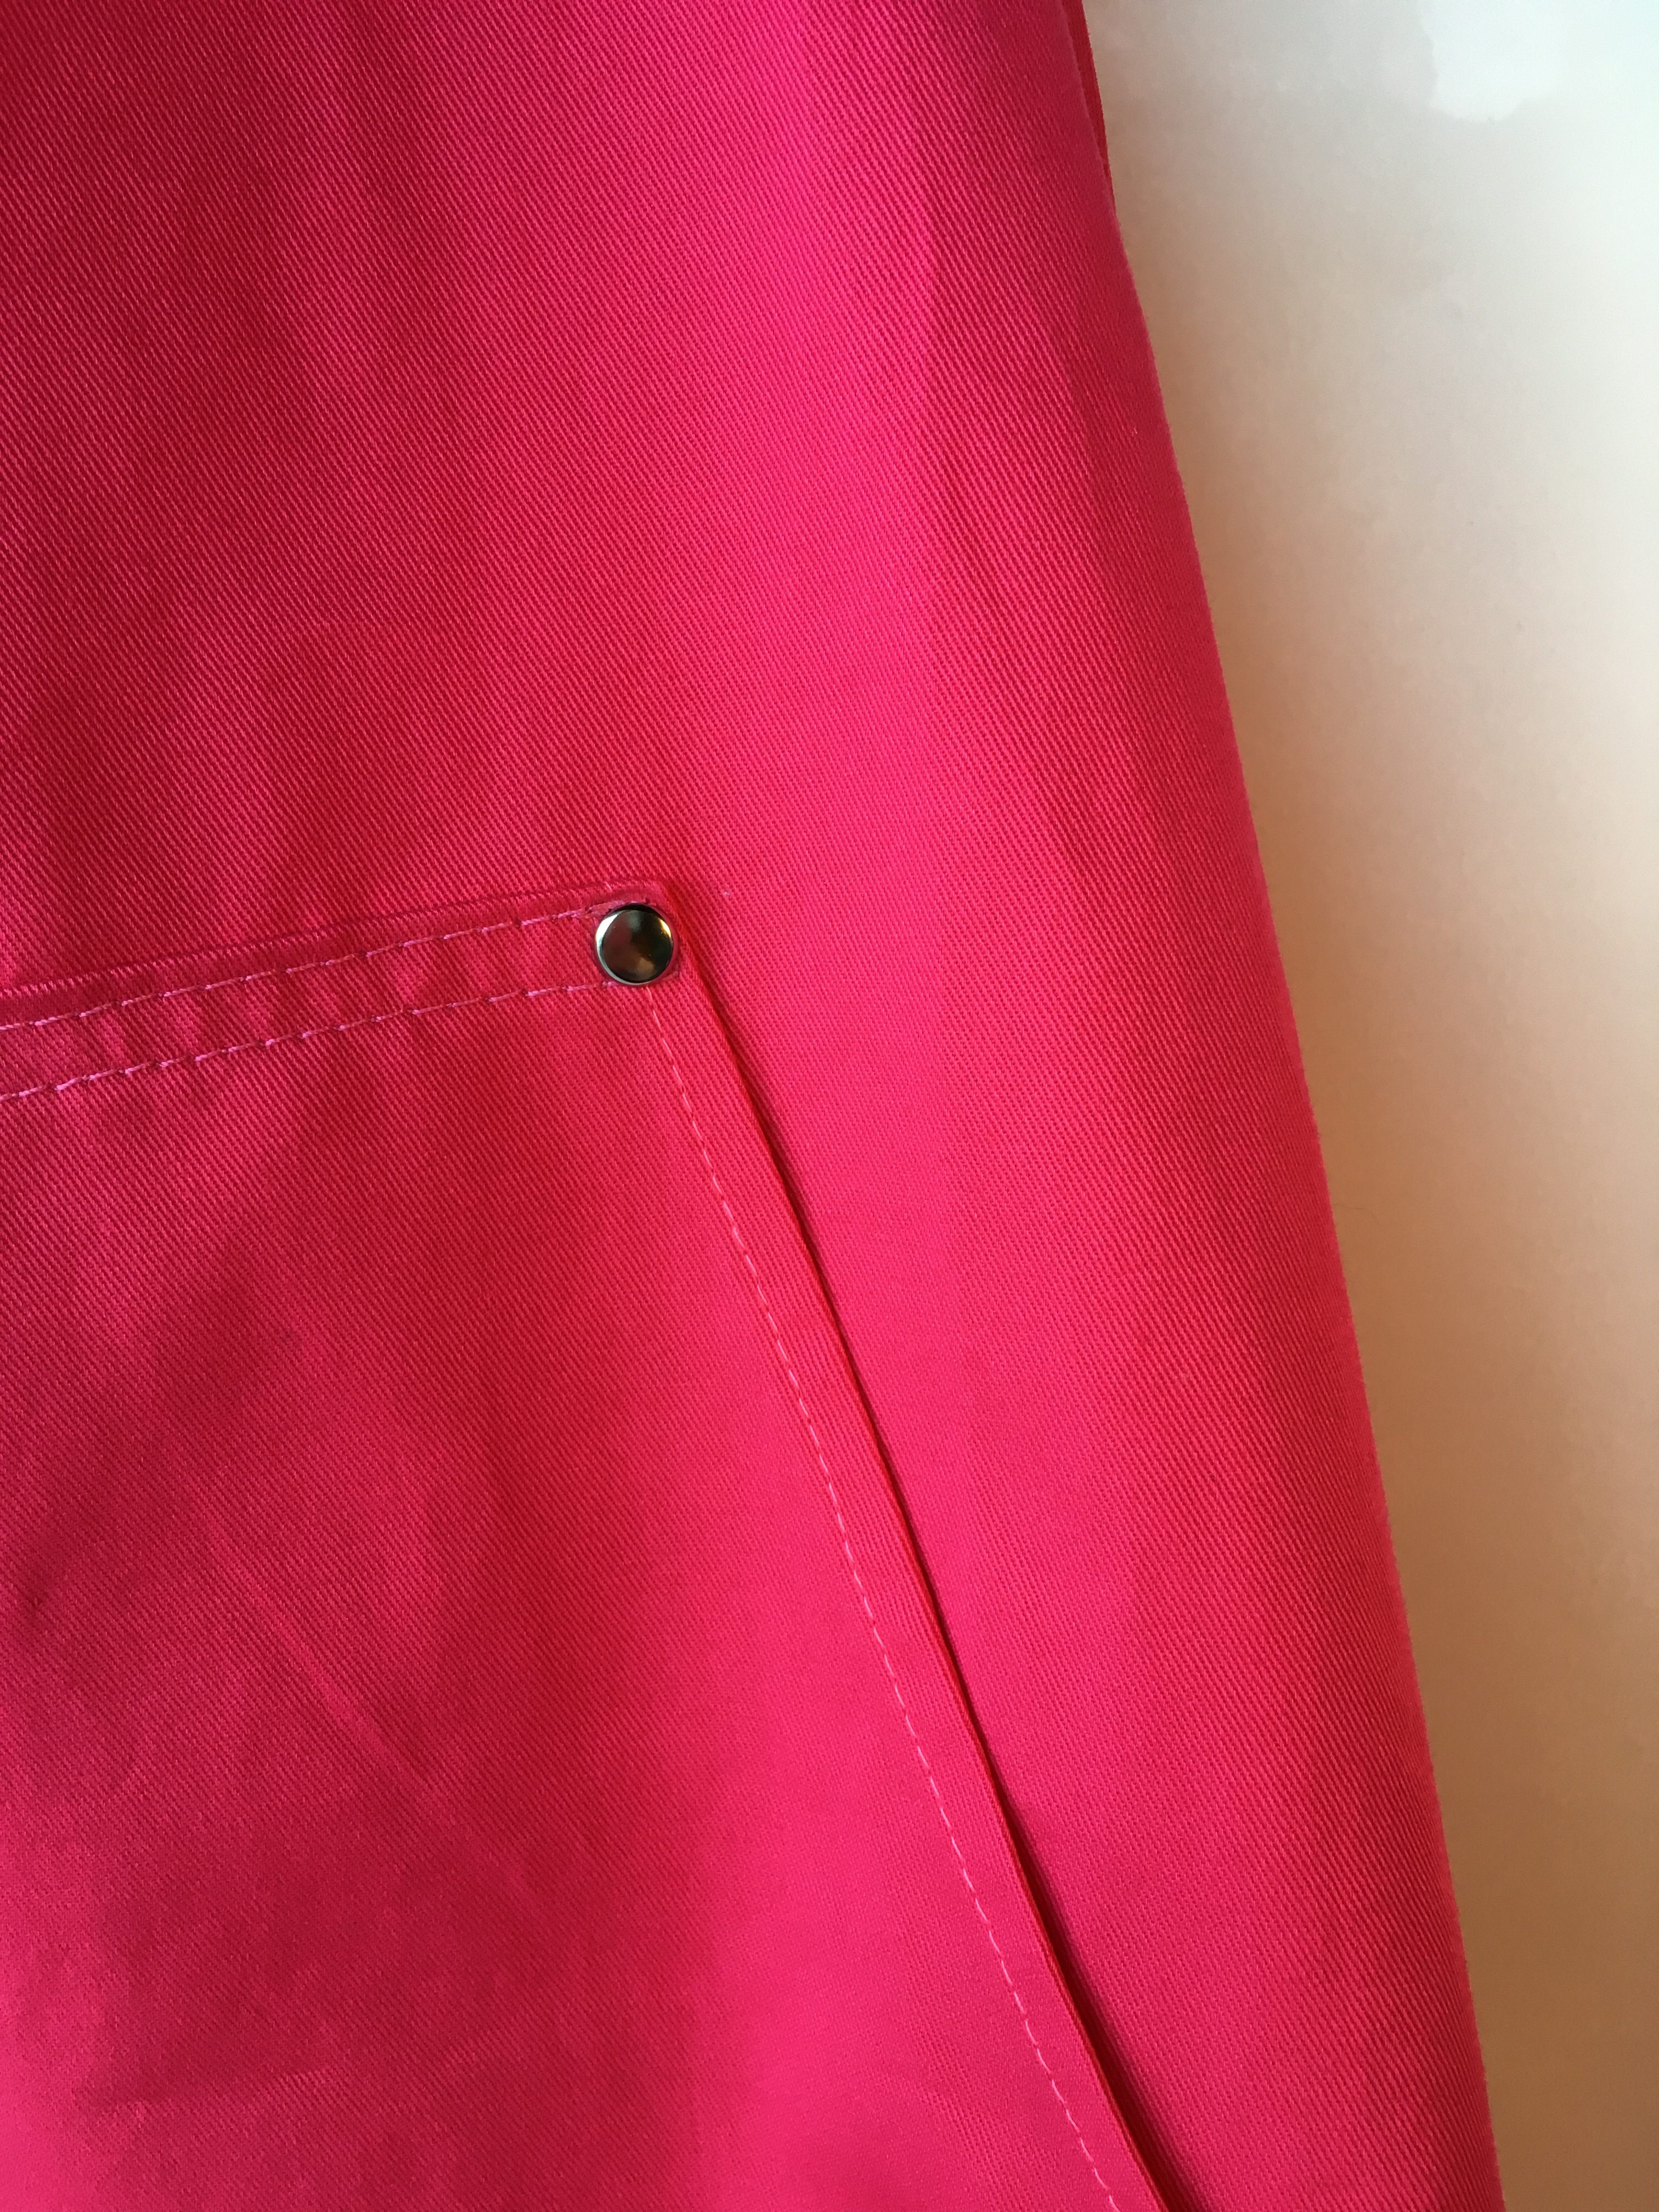 Coverall Apron in Hot Pink cotton drill - pocket detail